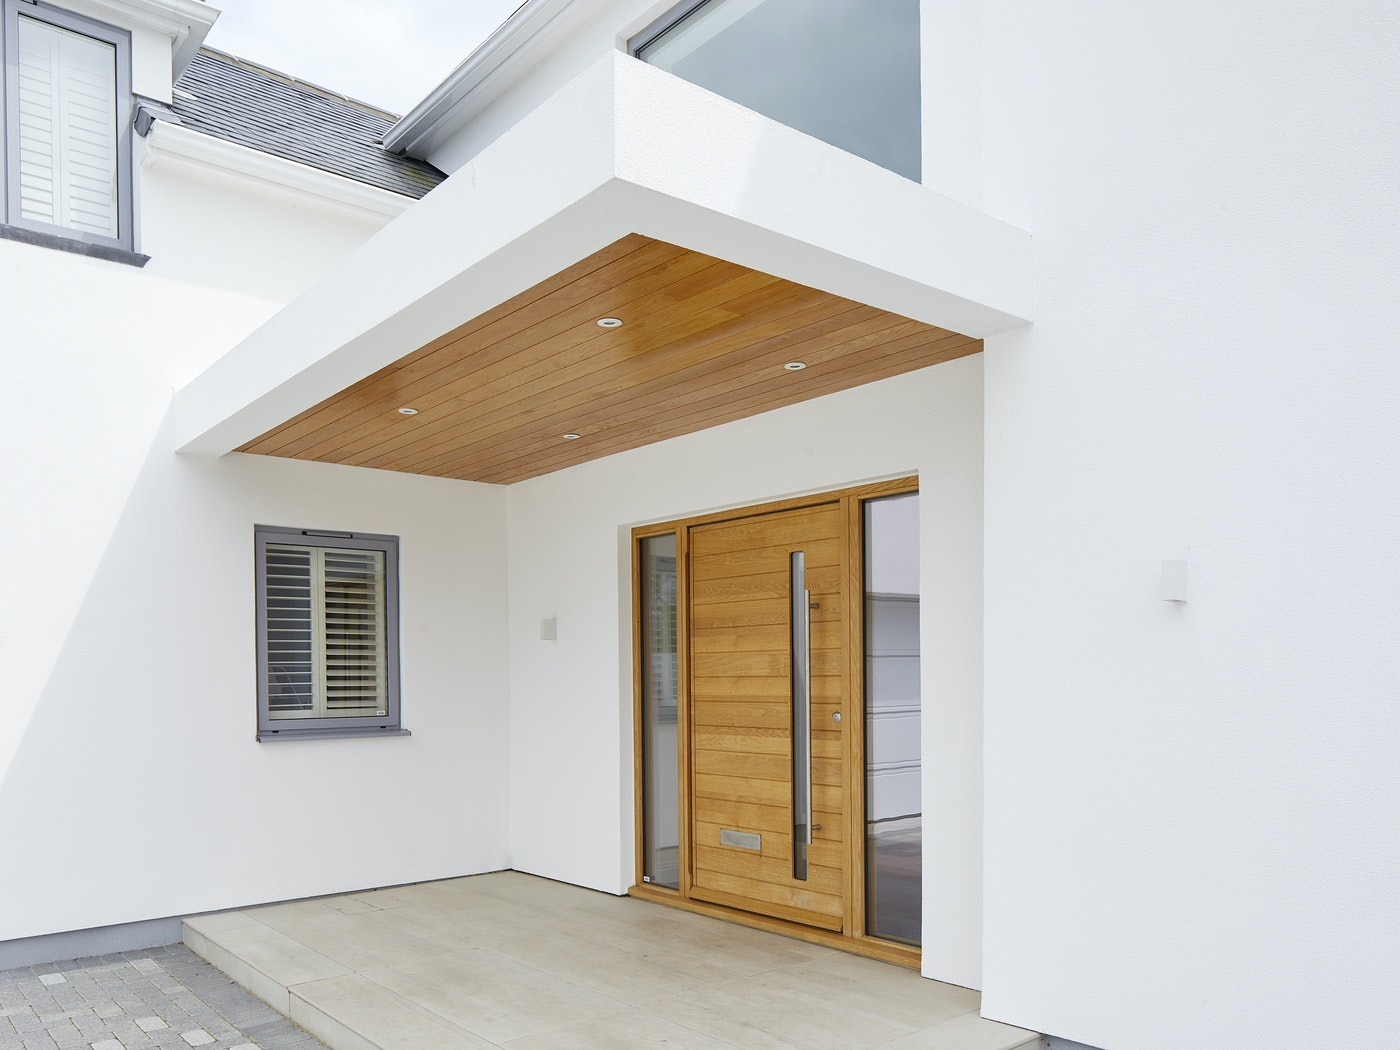 european oak is well suited to tough weathering